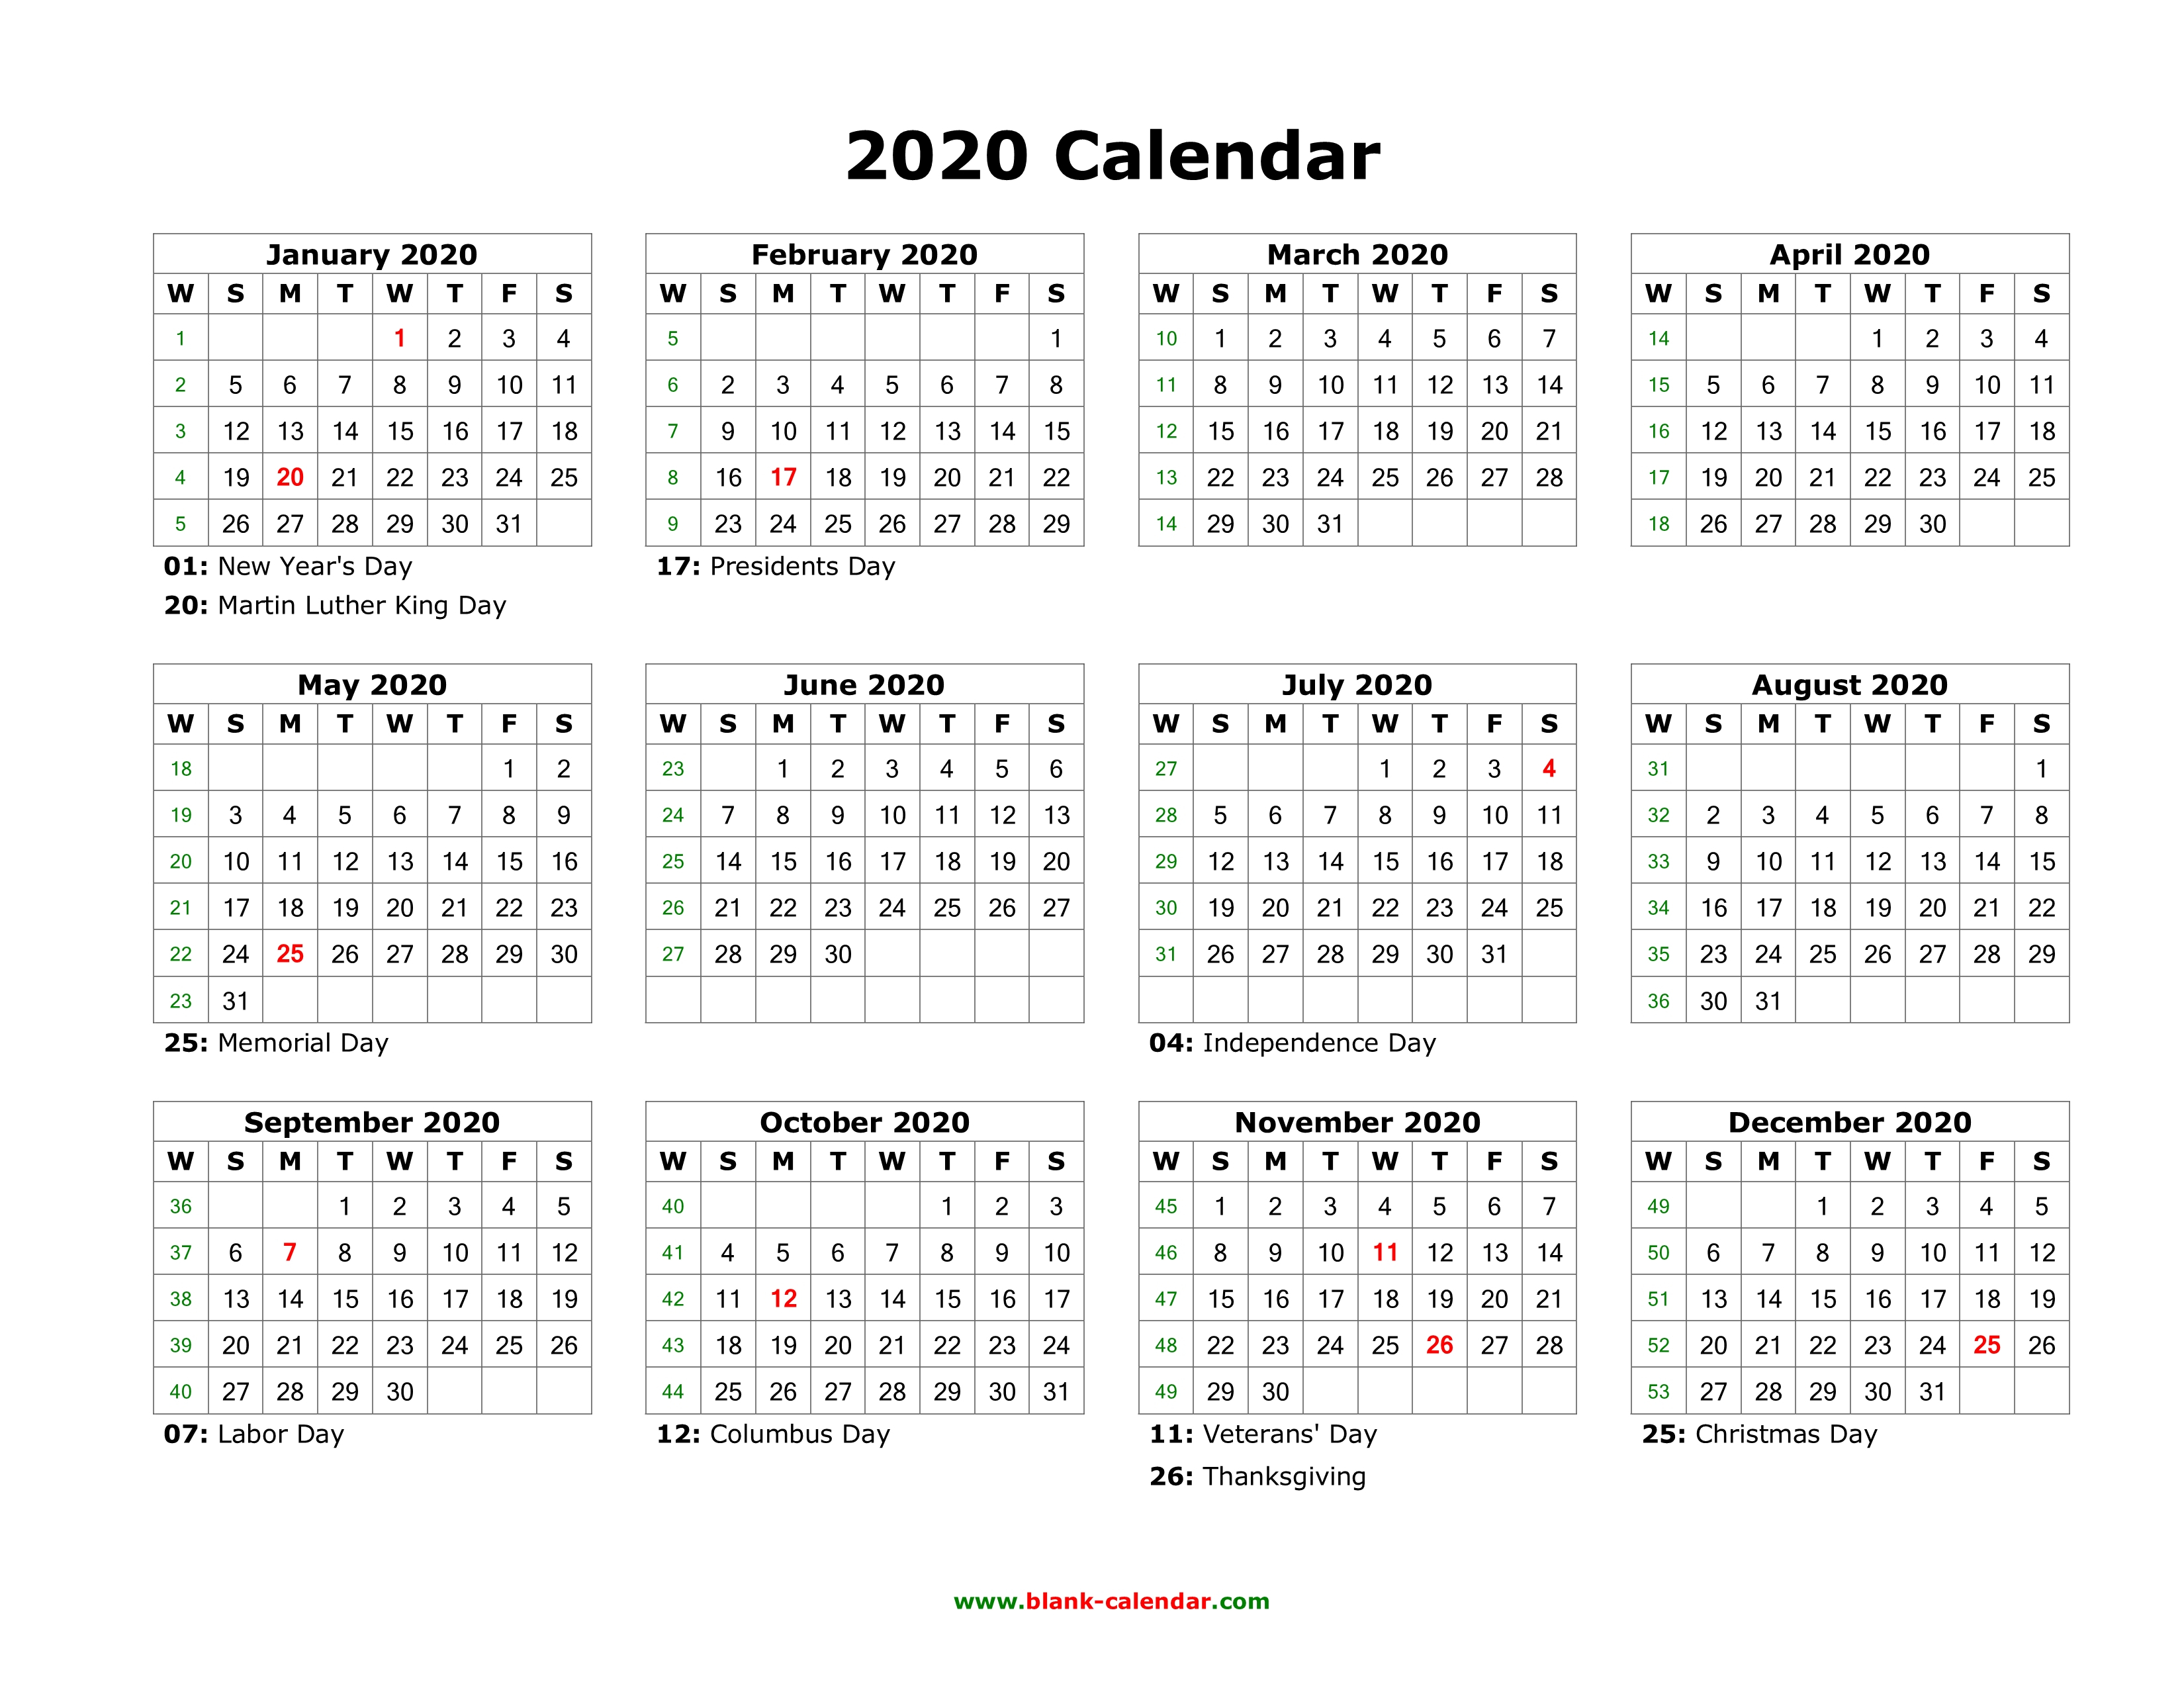 Blank Calendar 2020 | Free Download Calendar Templates inside Free Calendar 2020 Dont Have To Download